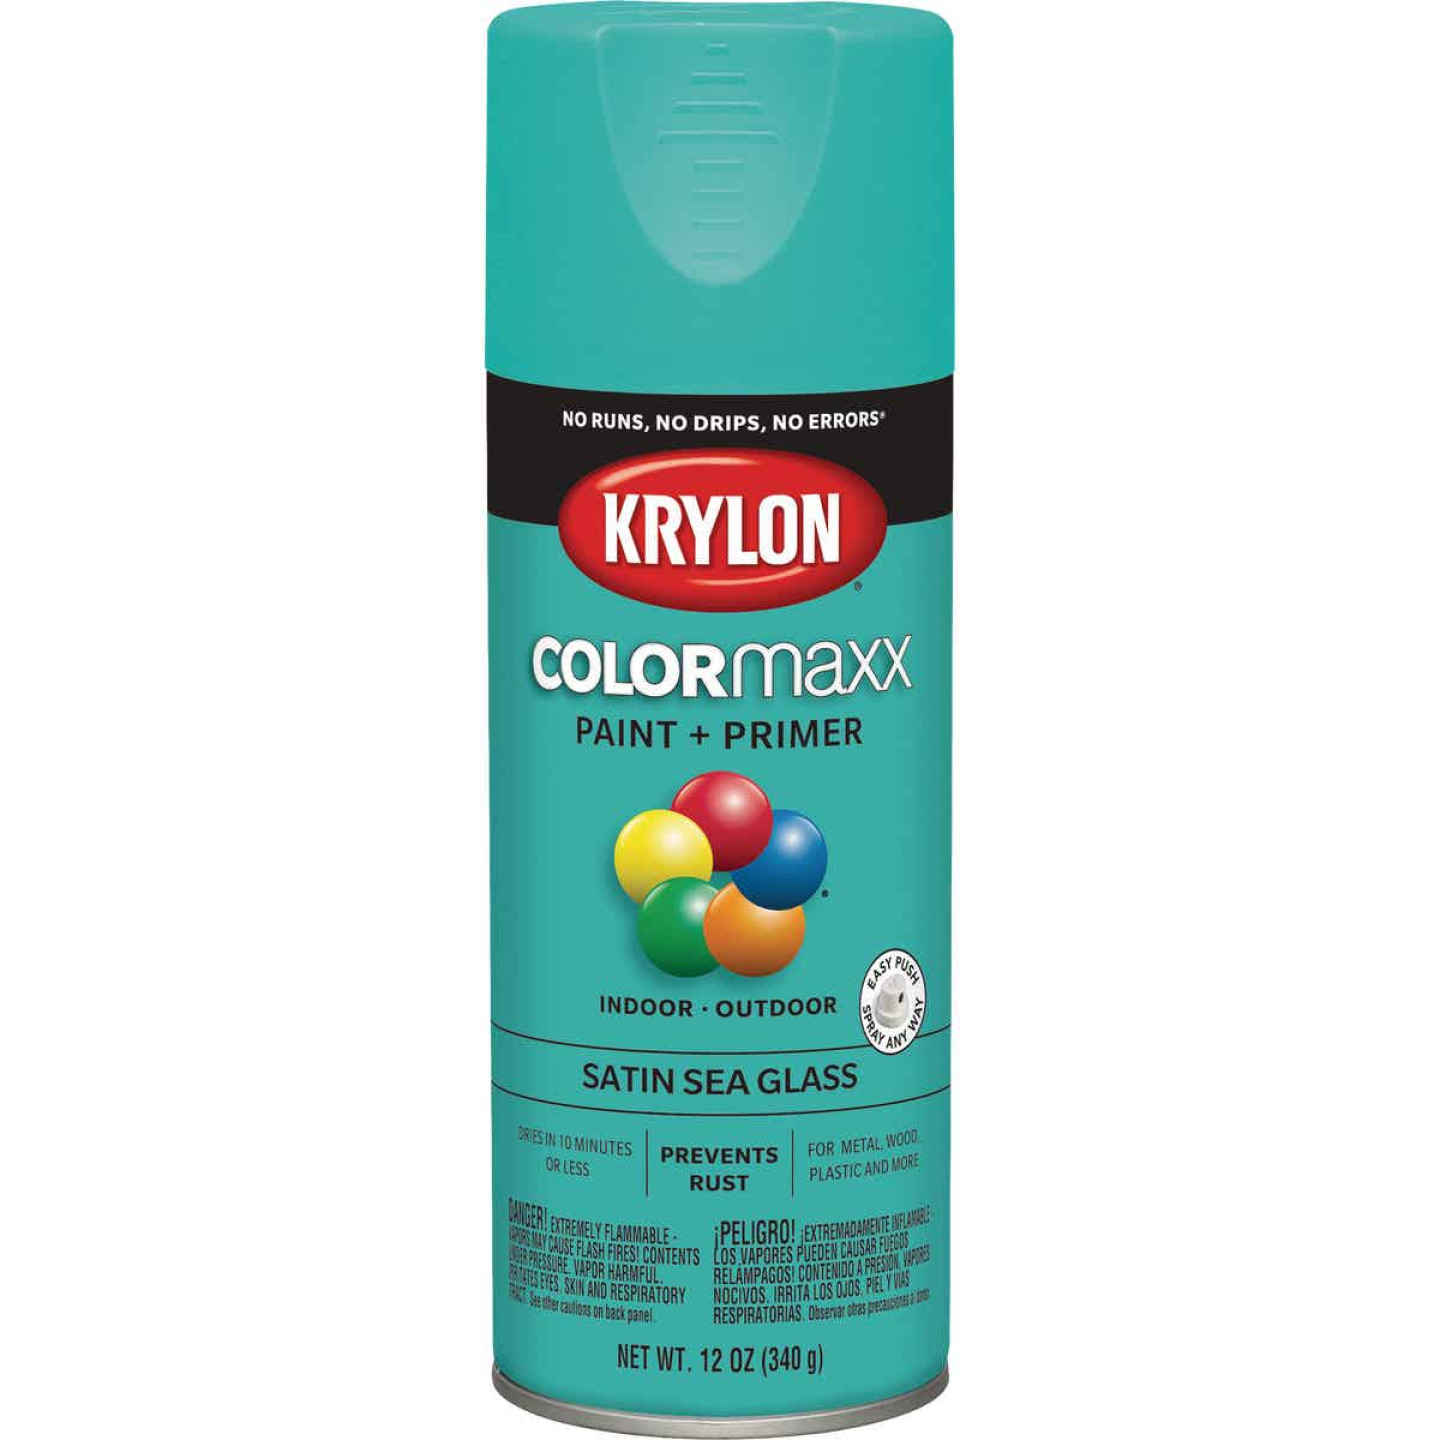 Krylon Colormaxx Satin Spray Paint & Primer, Sea Glass Image 1